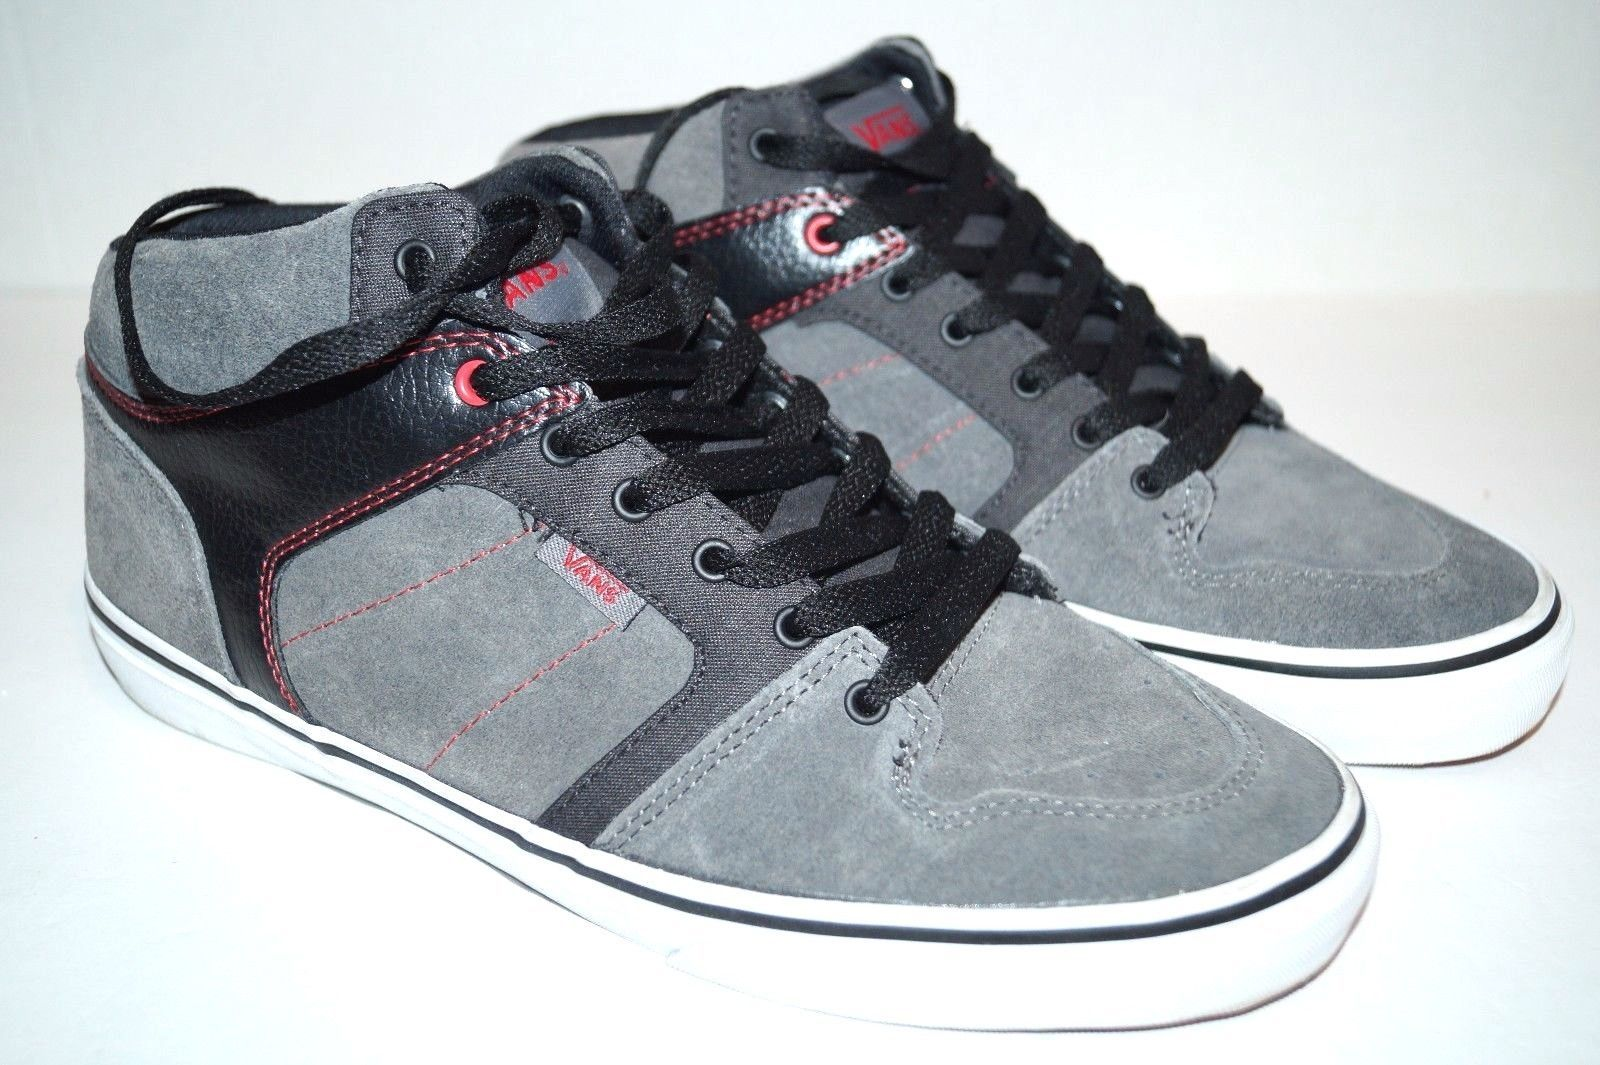 51c0d9daa8 VANS Vulcanized Mid Top Shoes Mens Suede and 50 similar items. S l1600